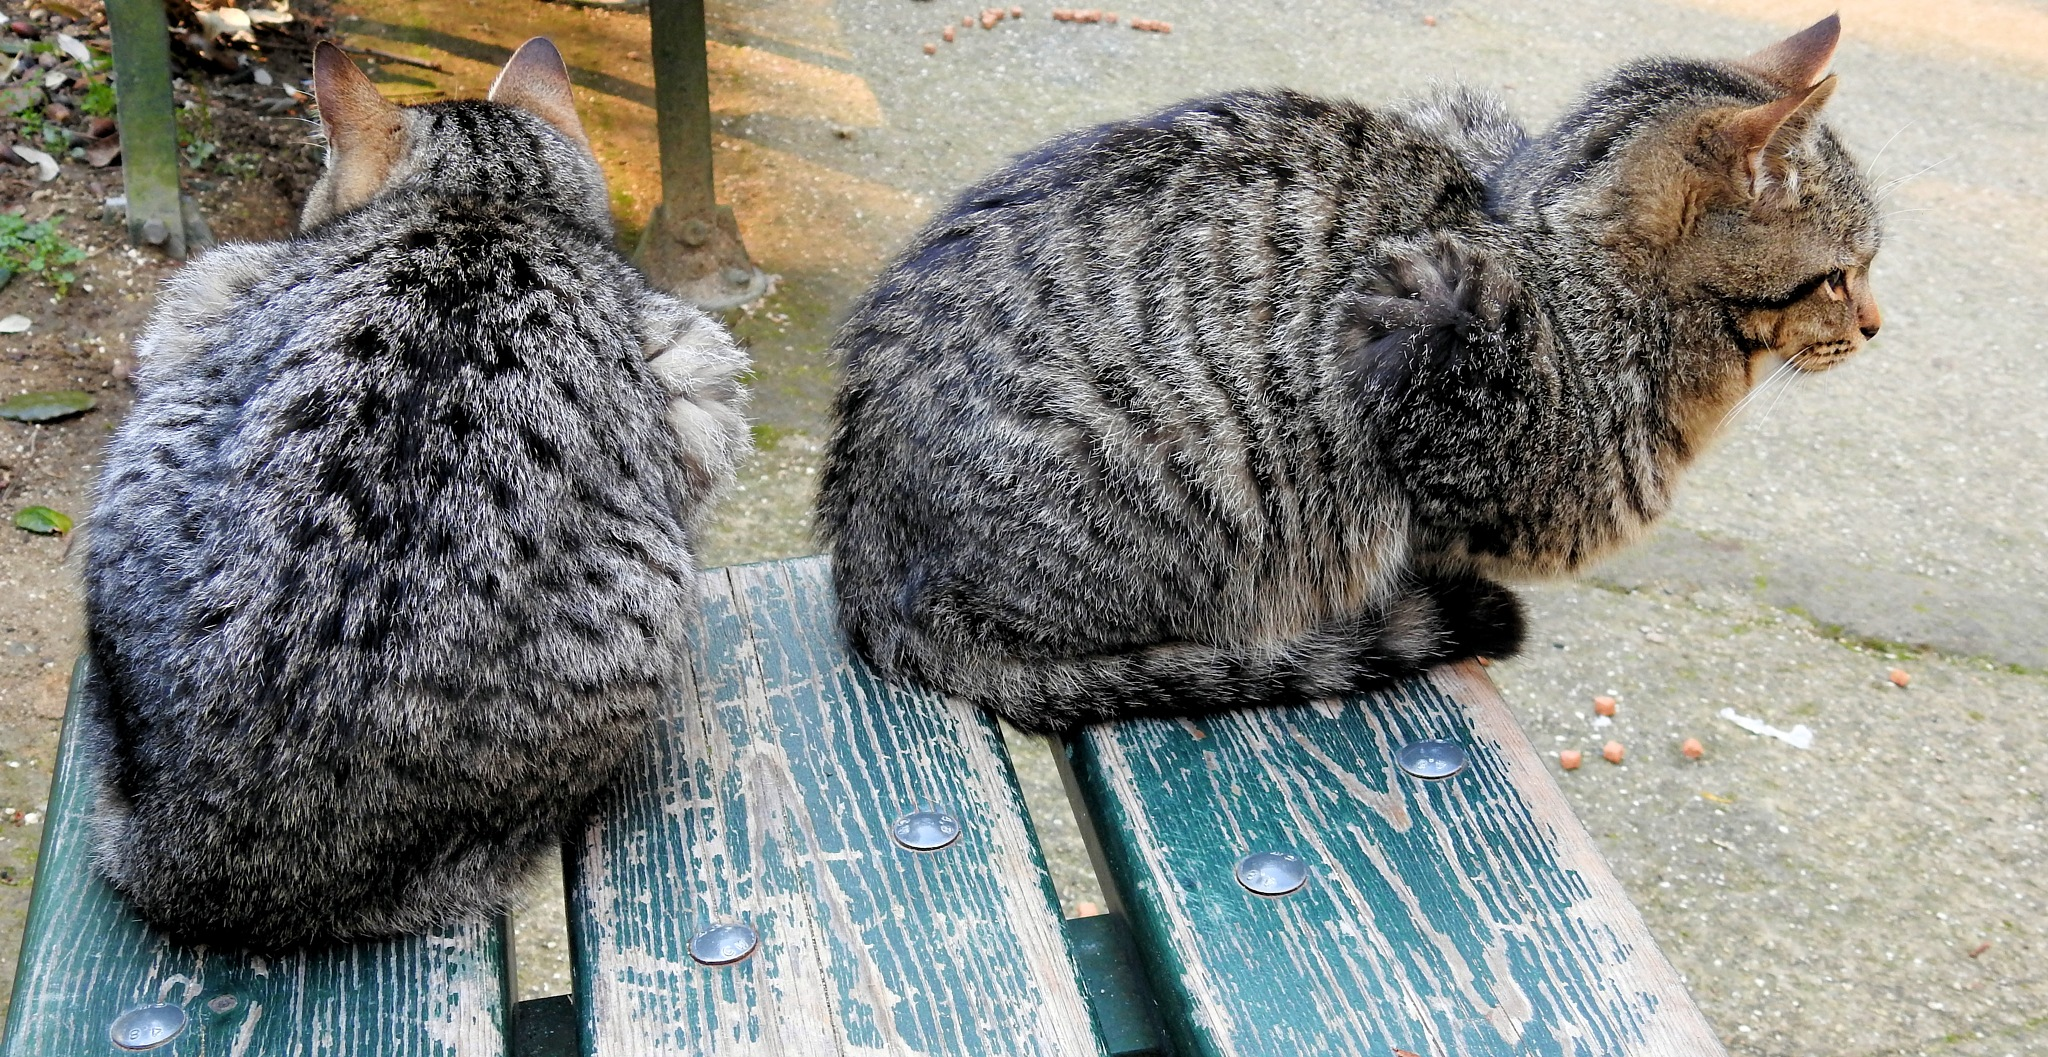 Naples - Villa Floridiana - The Grey Cats Brothers - 1 by Mister Arnauna & Gatto Giuggiolone